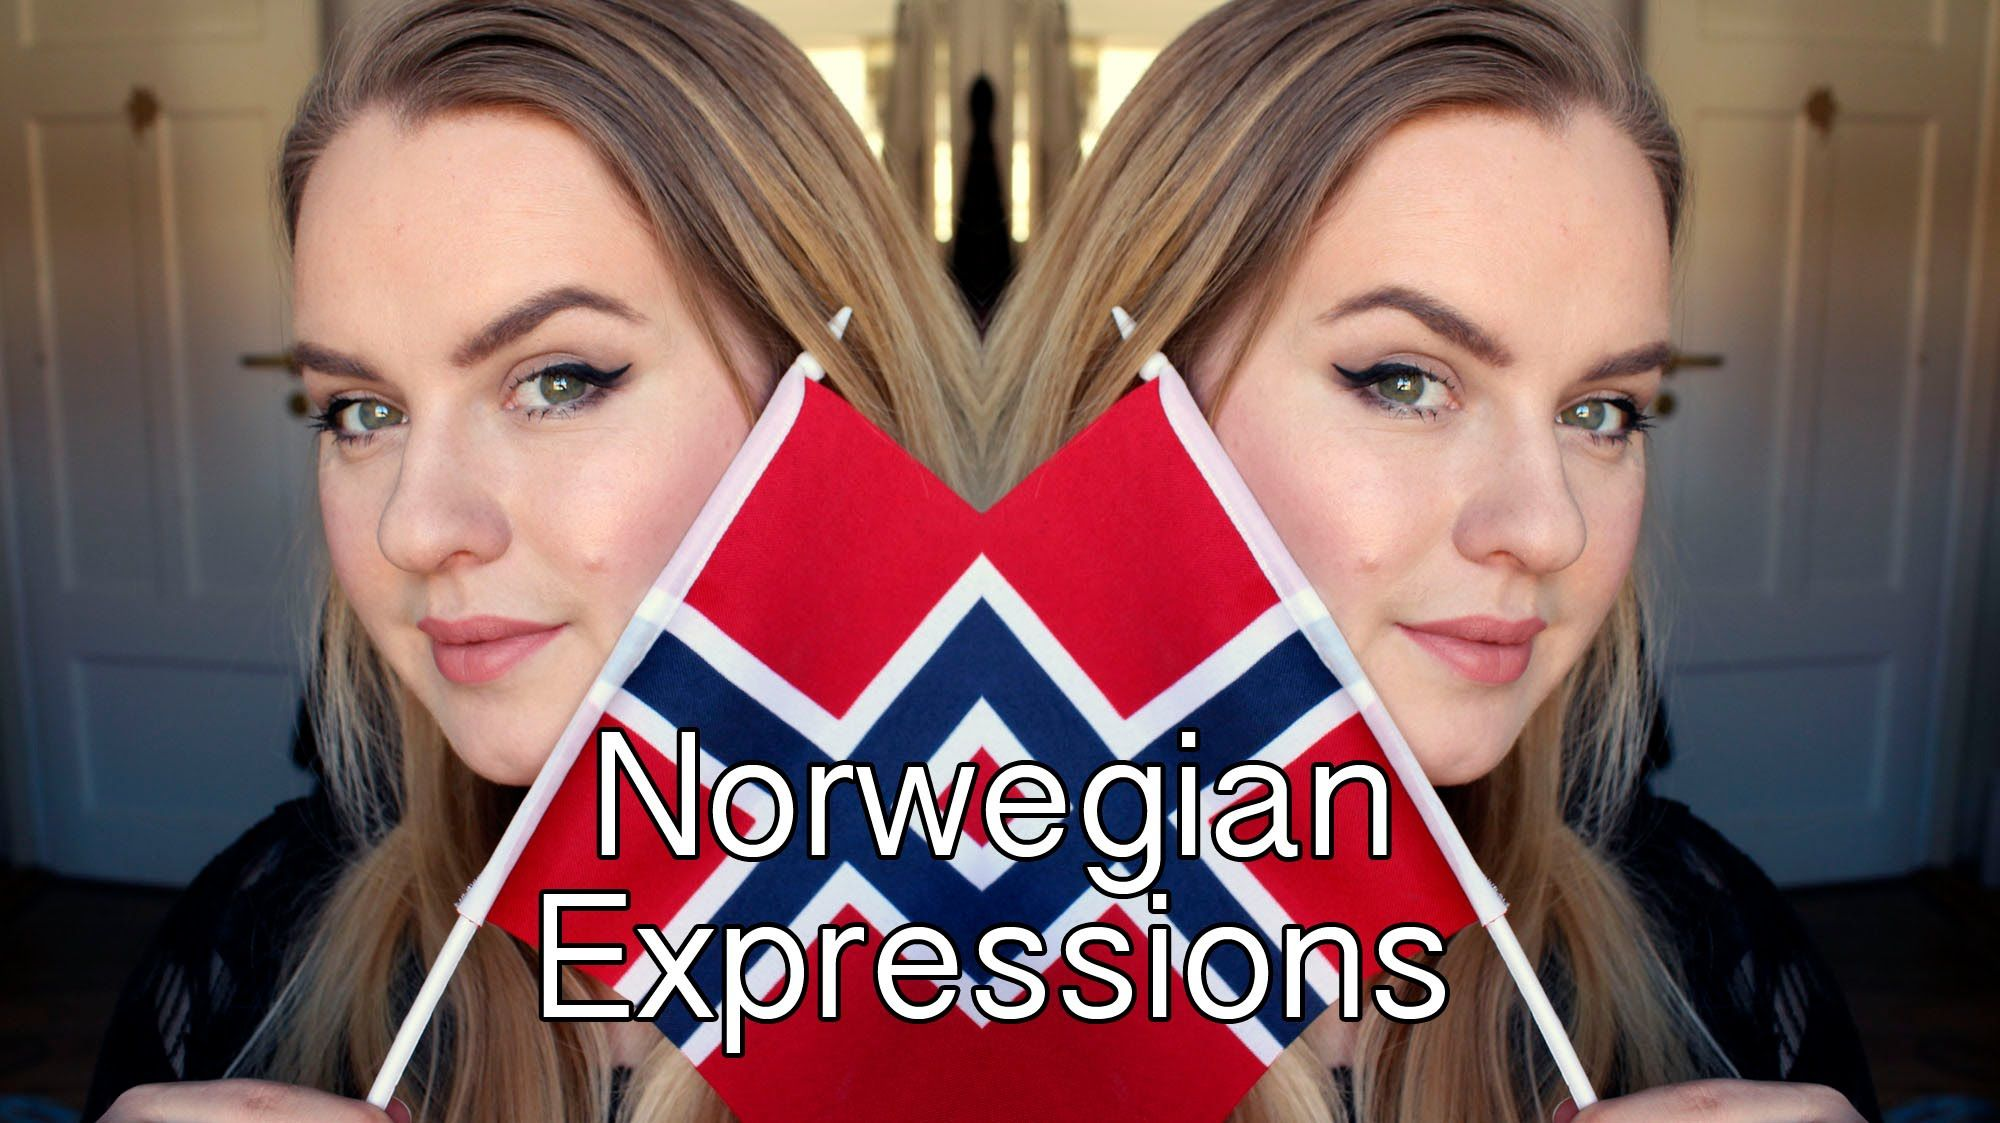 Norwegian Expression With Images Norwegian Norway Ideas Sons Of Norway